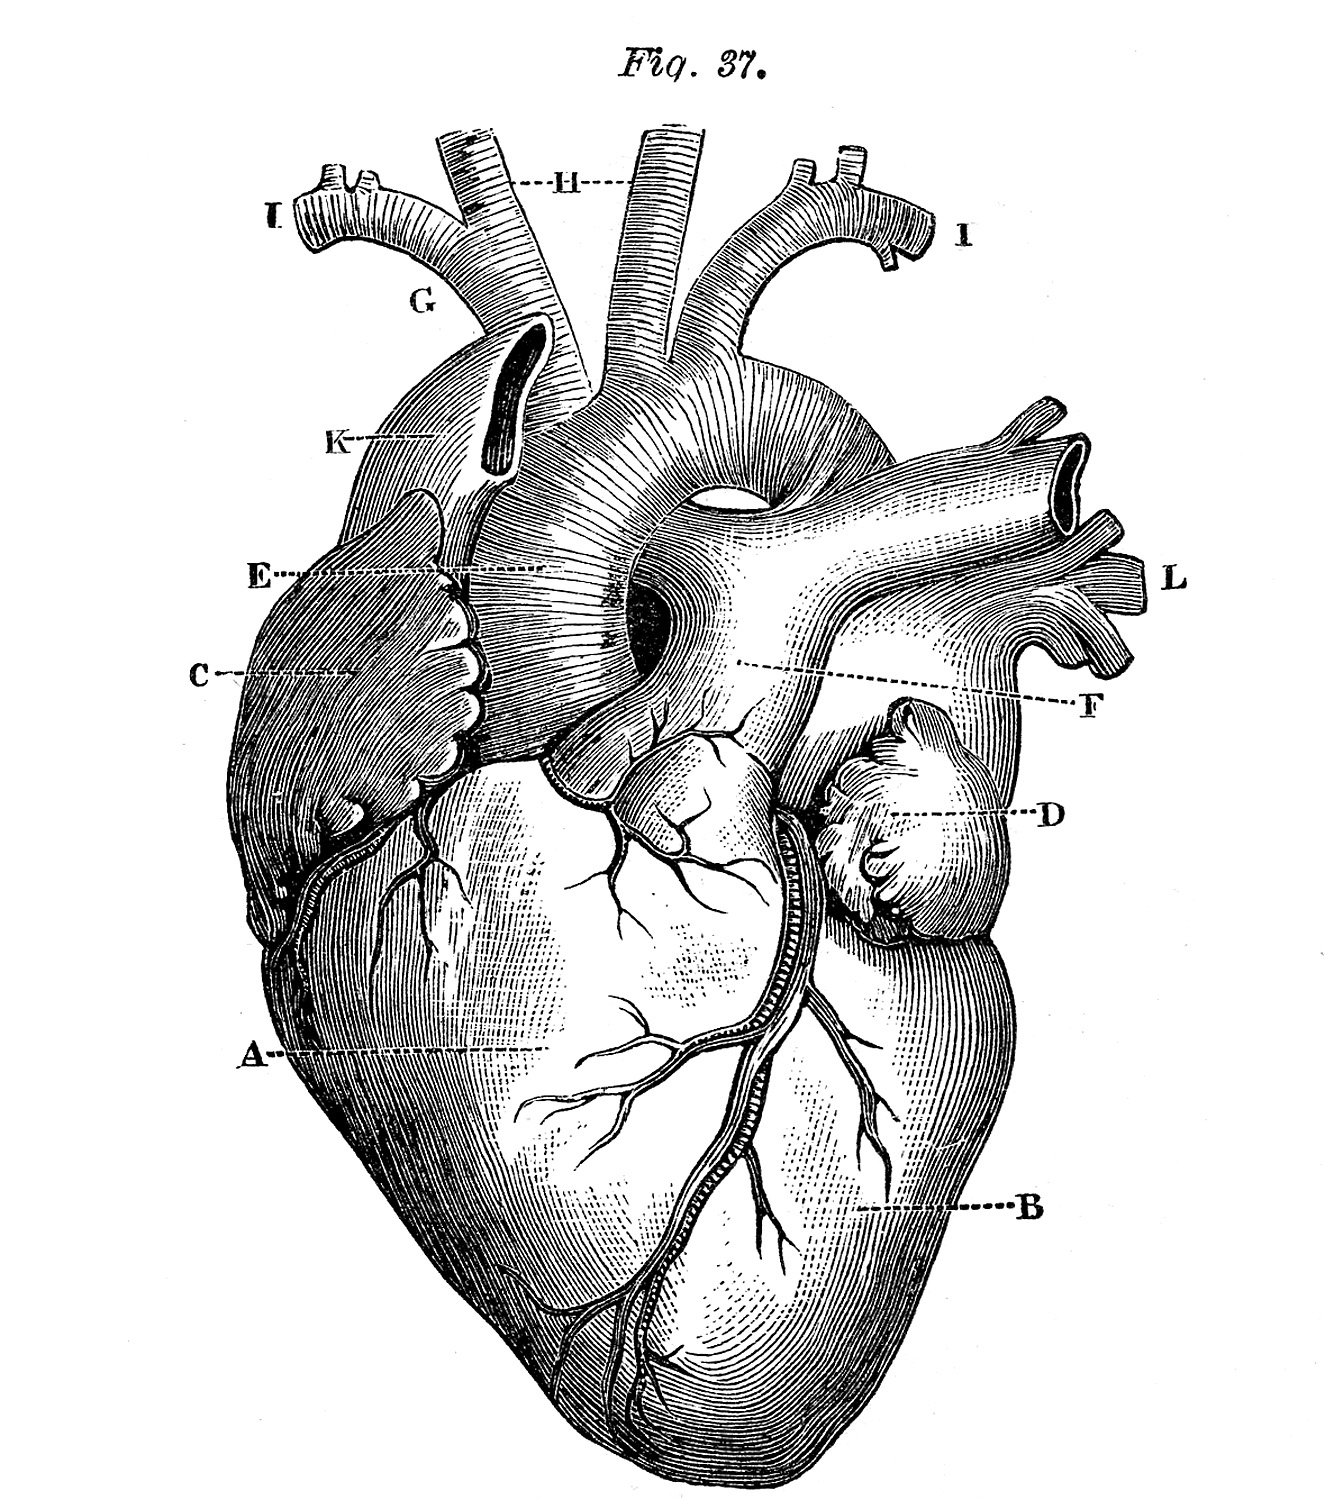 Vintage Black and White Anatomical Heart Illustration